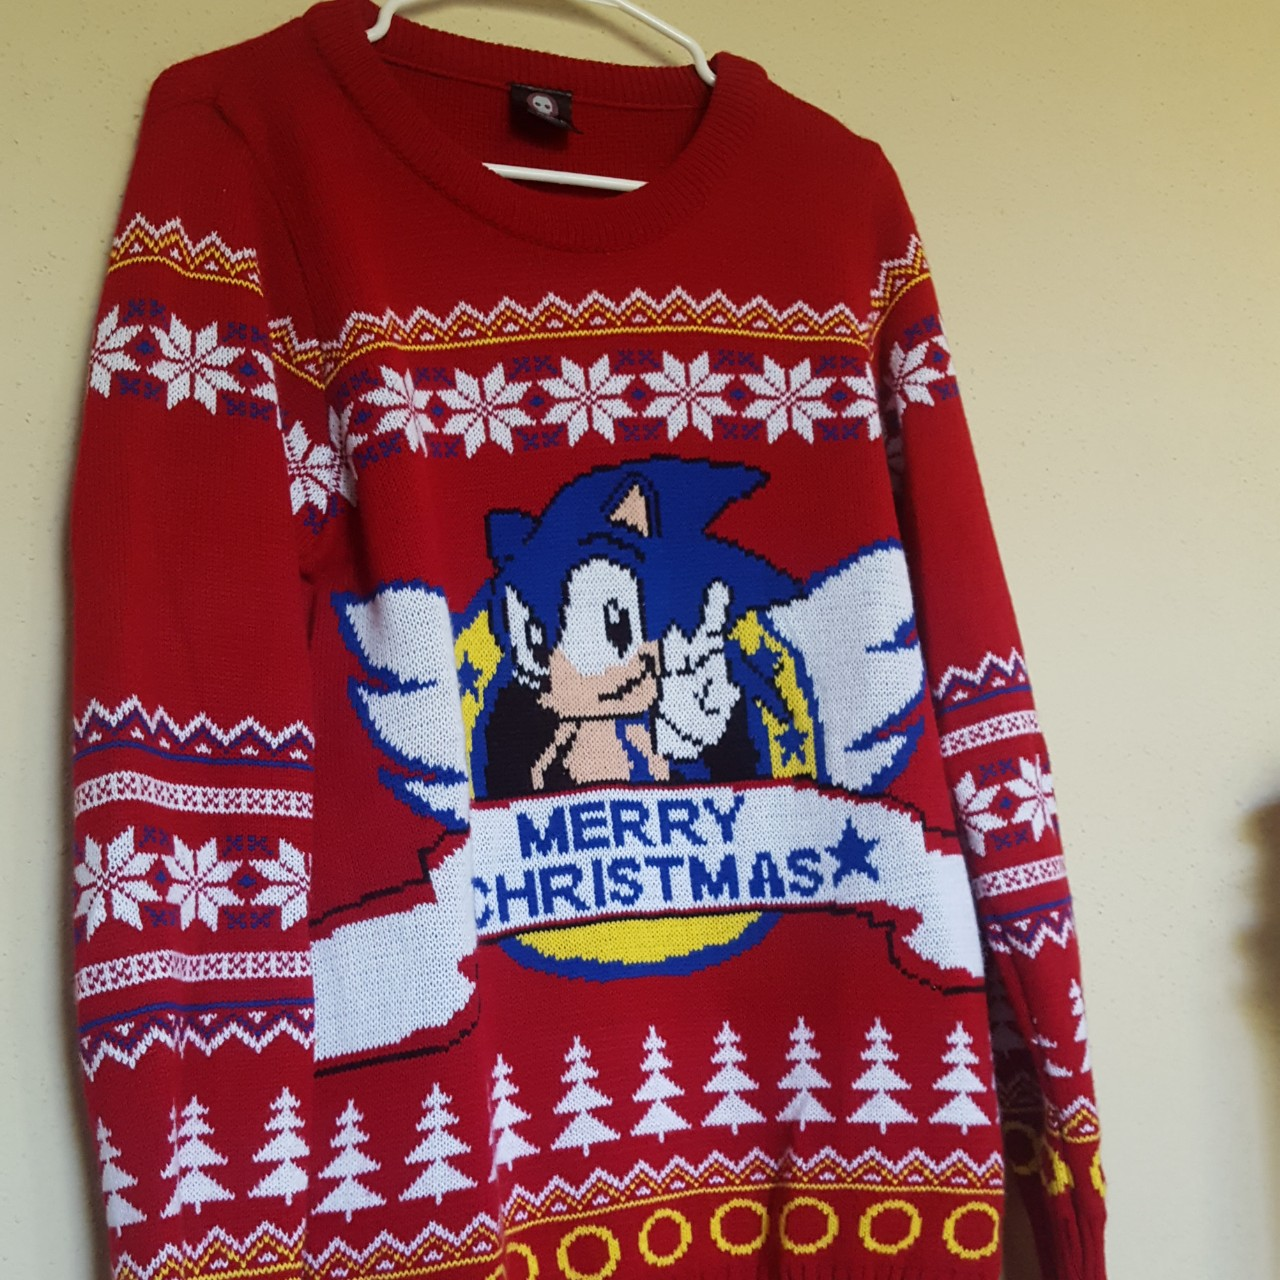 Hedgehog Christmas Sweater.Sonic The Hedgehog Christmas Sweater Size Large Only